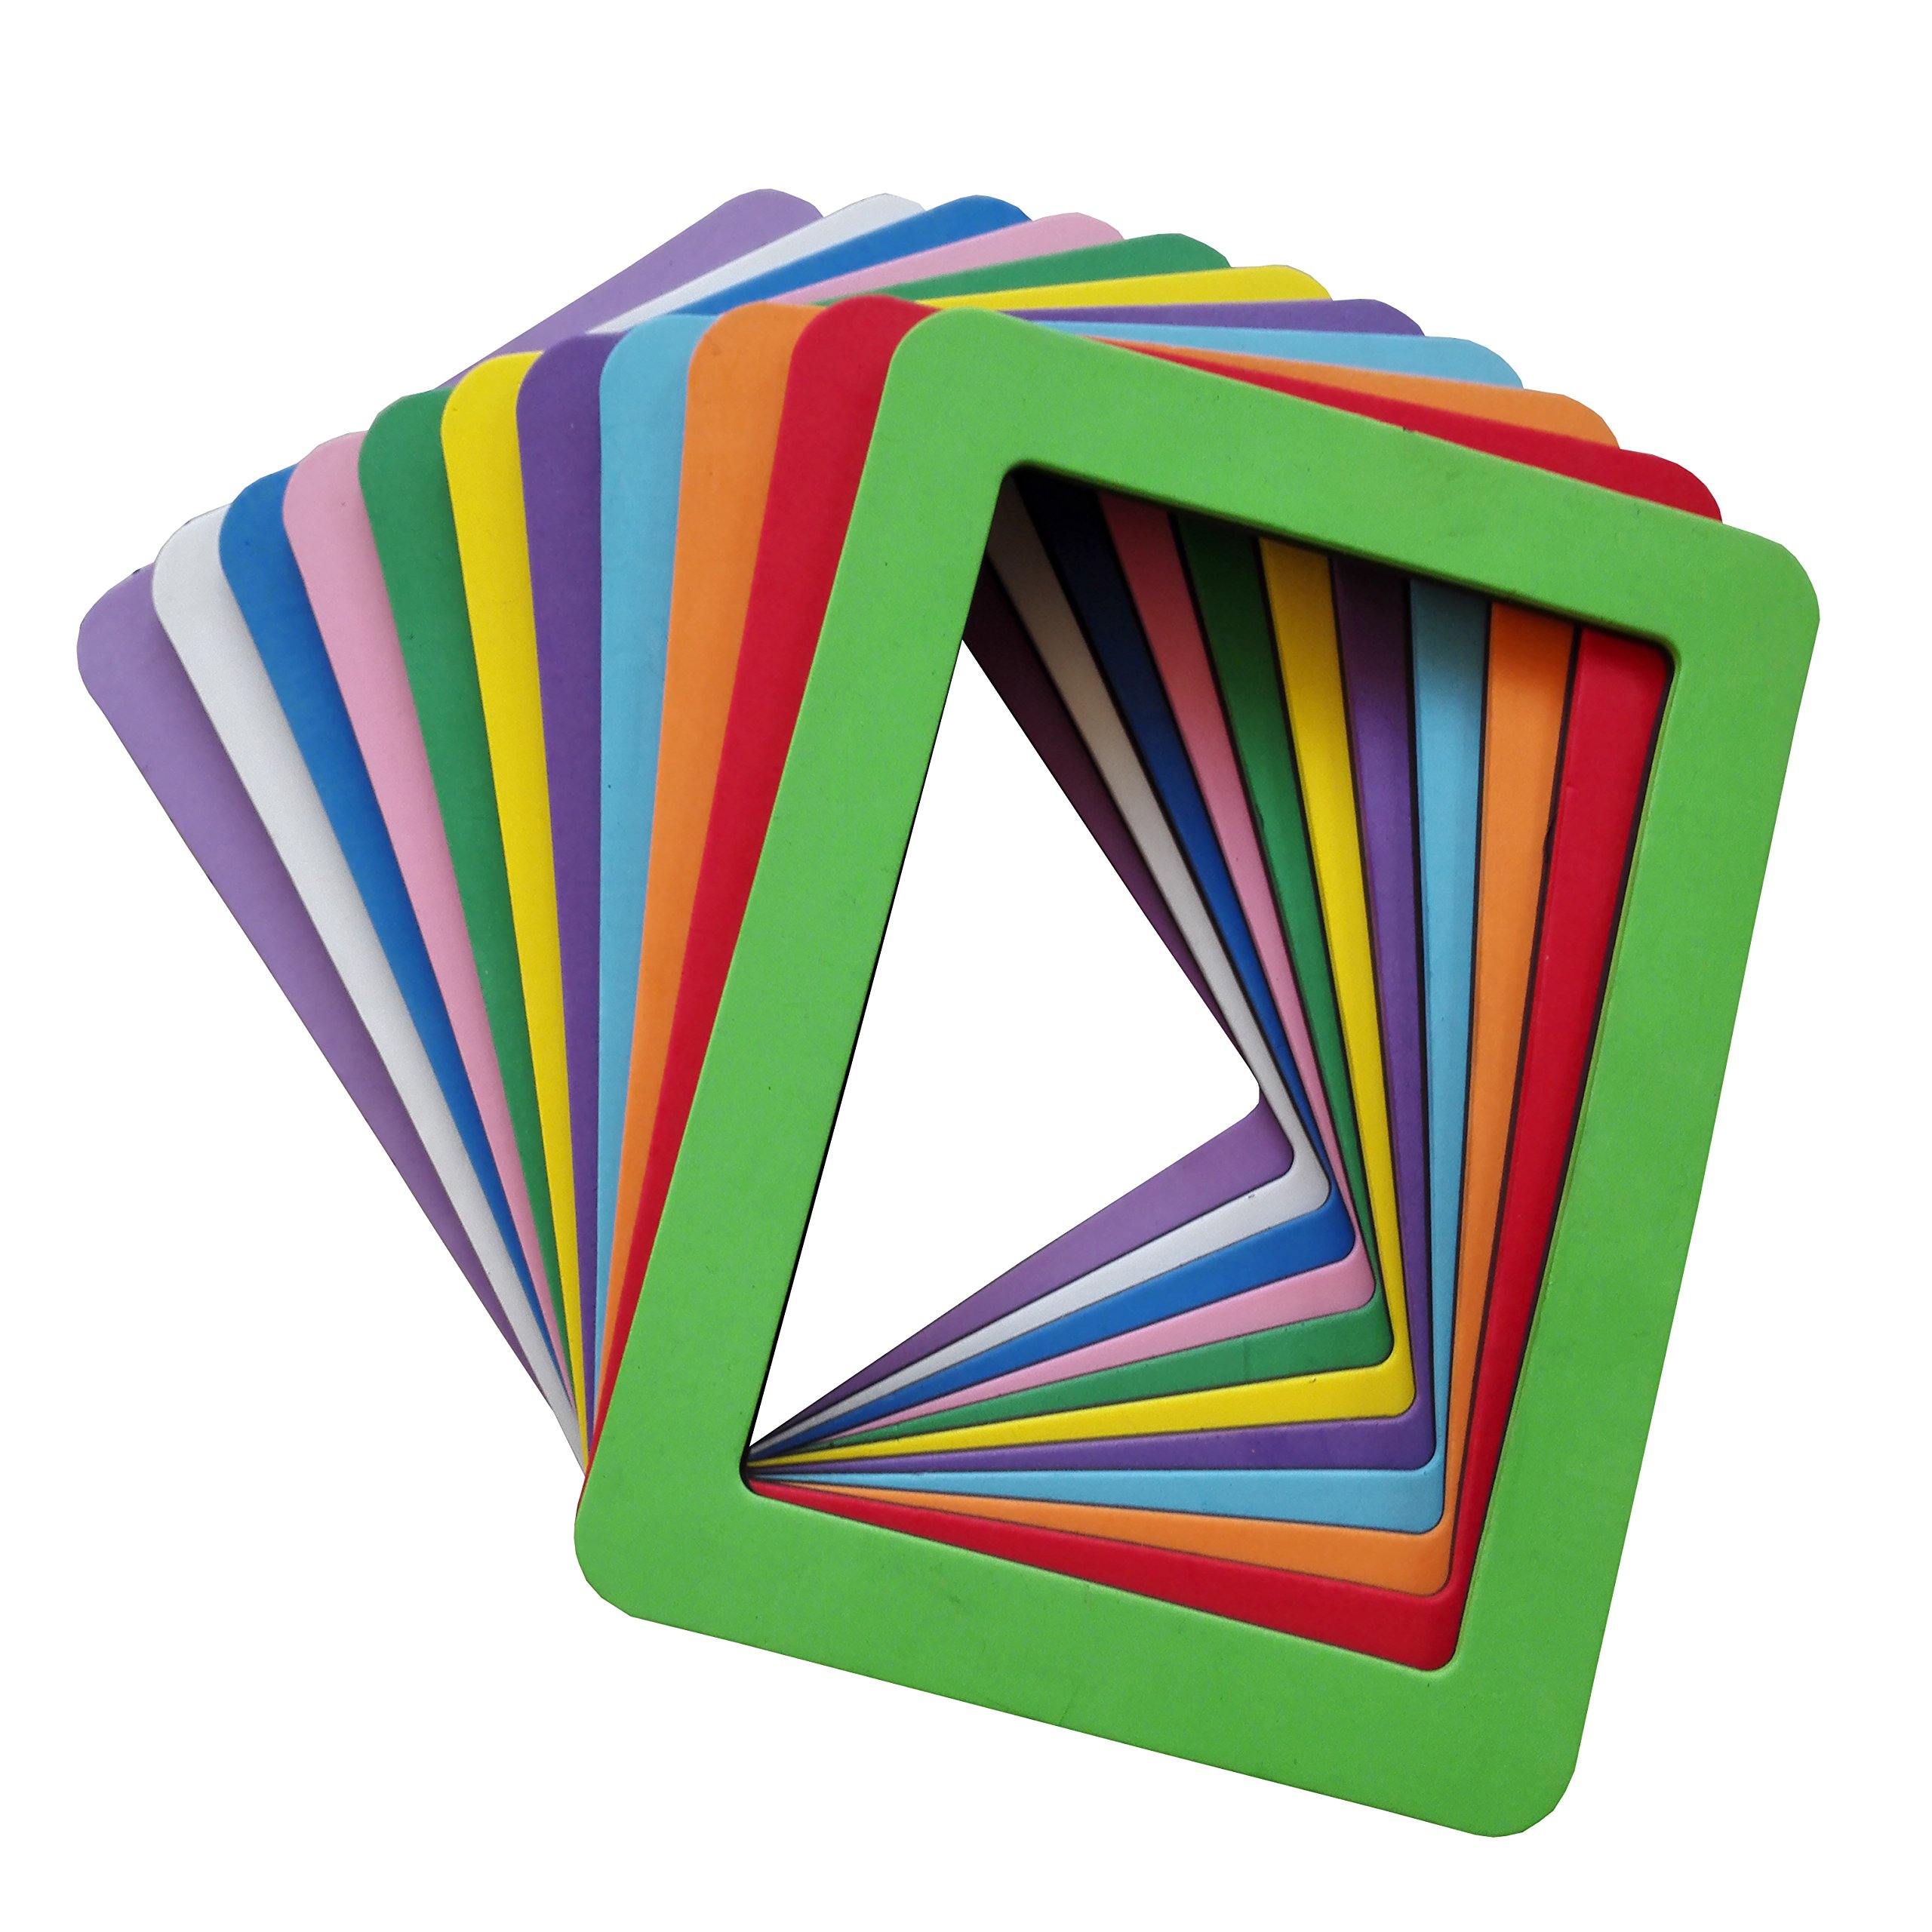 Ru Xing Set of 11 Colorful EVA Magnetic Picture Frames for Photos,Drawings,Certificates,Posters,Notifications, Set of 11 (EVA 5 x 7 inch, Double Layer)